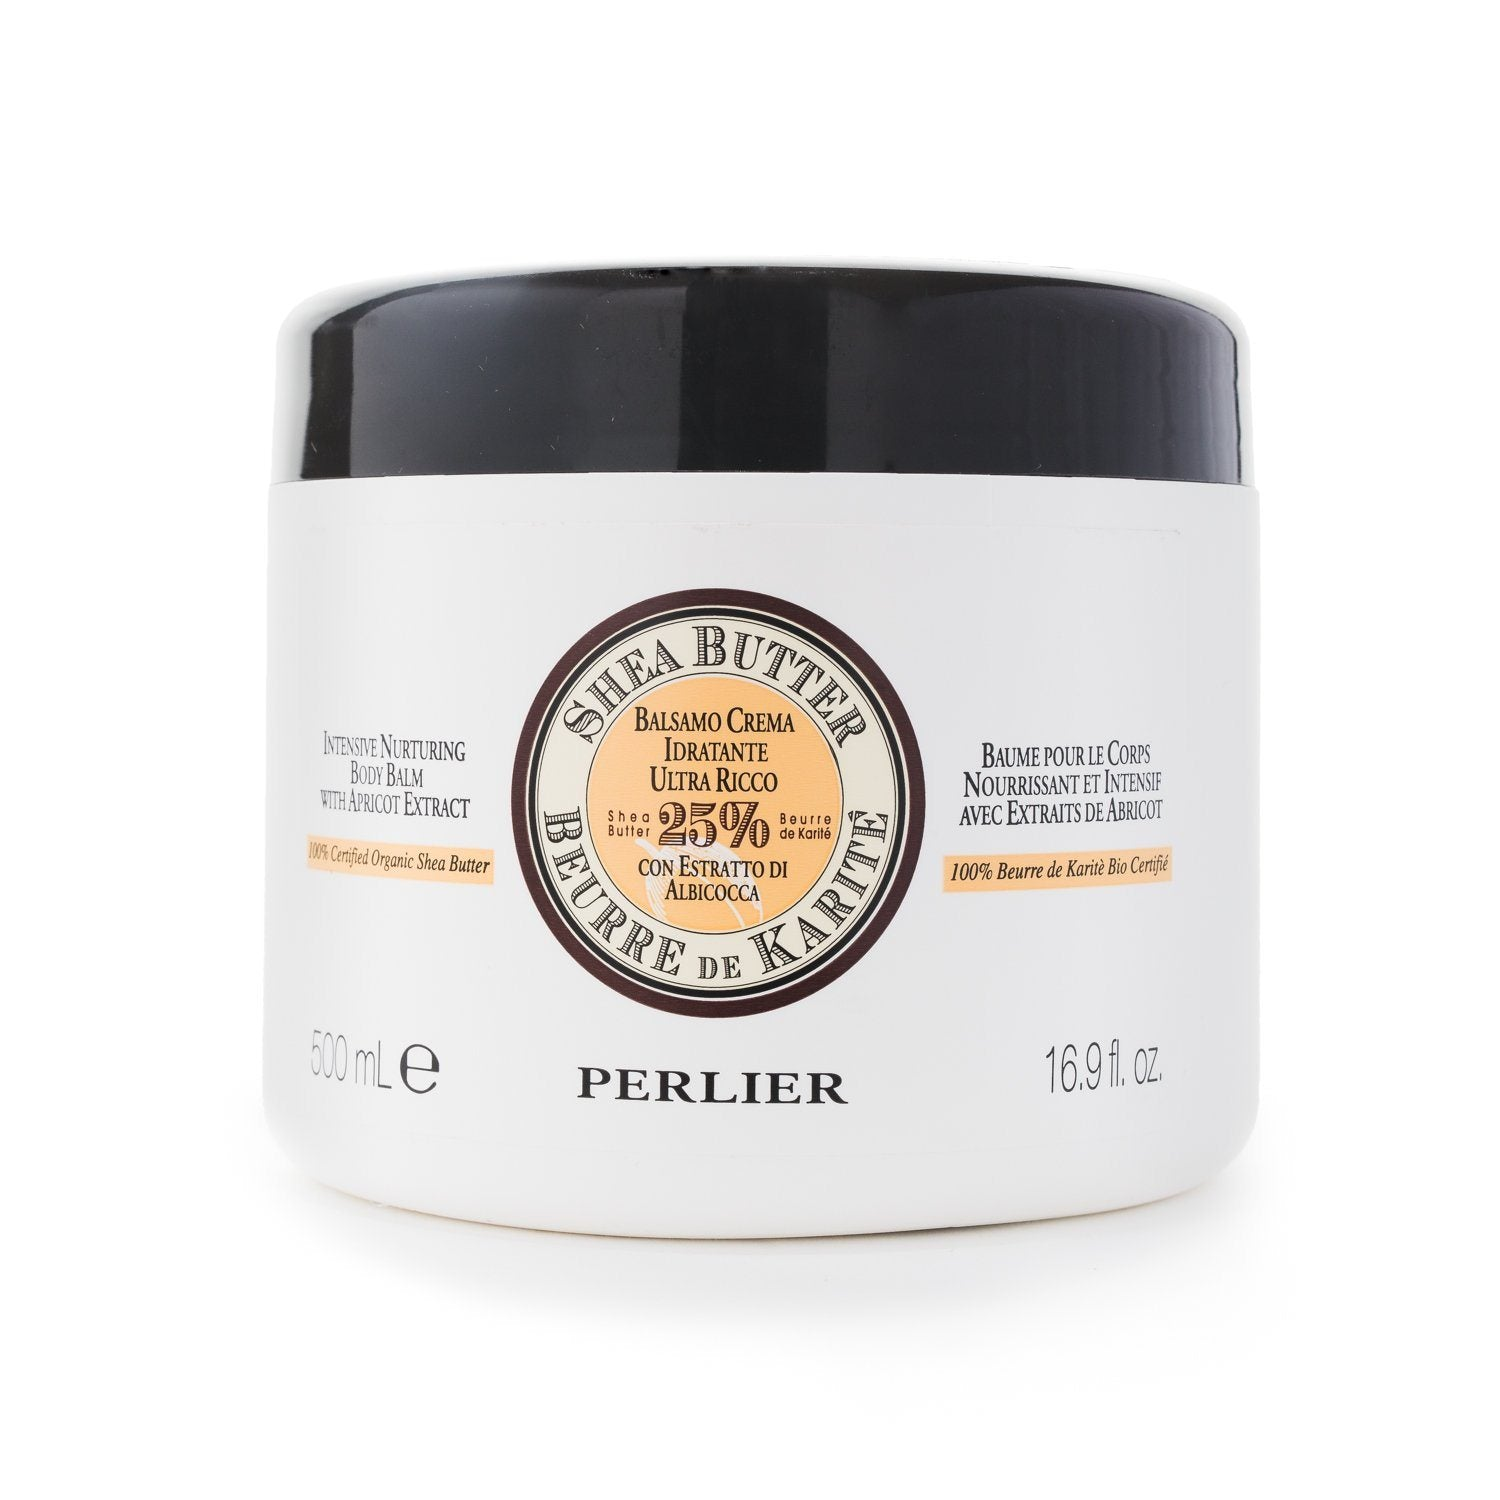 Shea Butter with Apricot Nurtutring Body Balm 16.9 oz